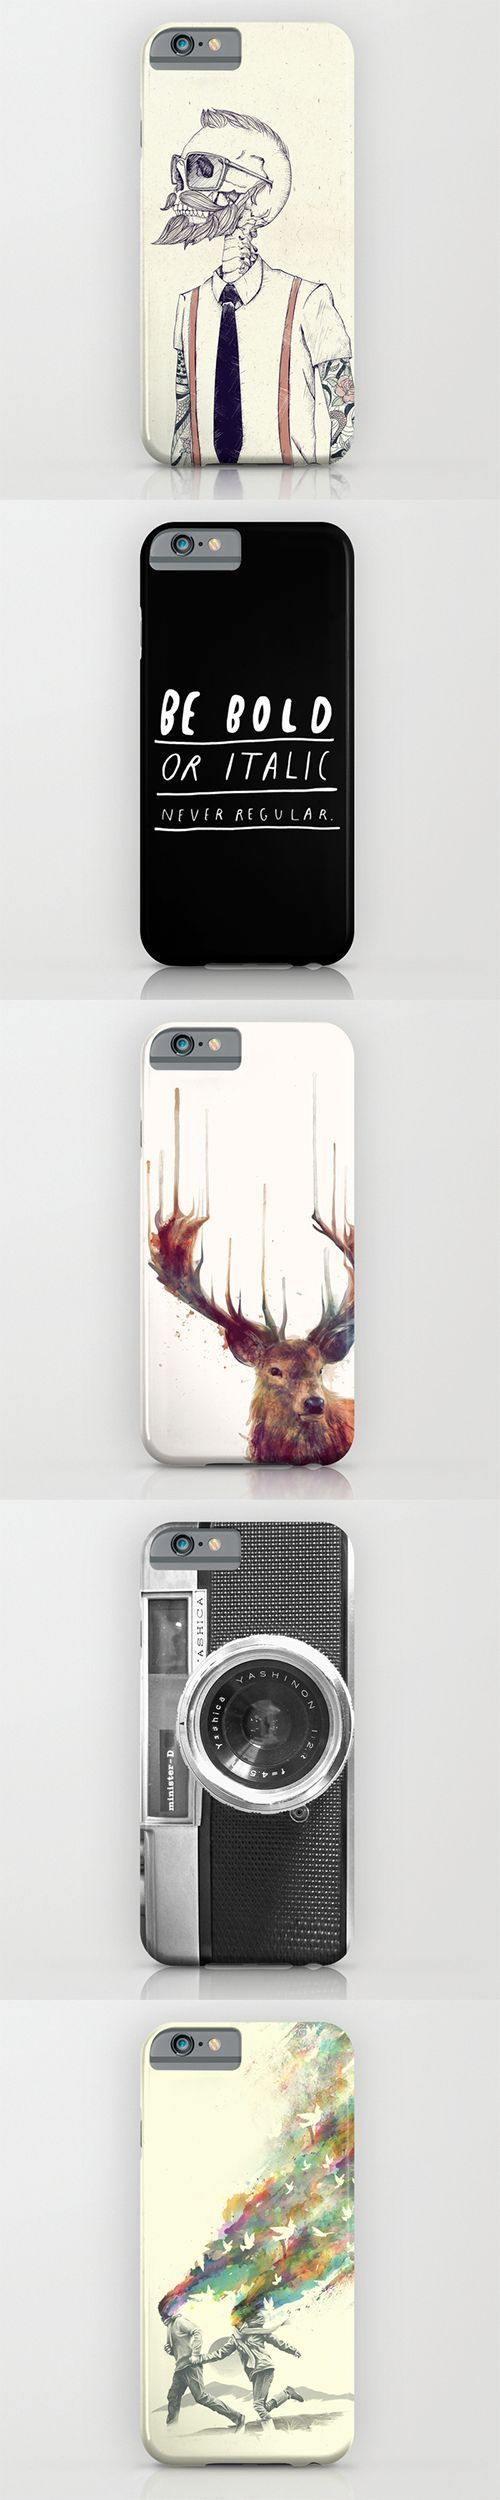 iPhone Cases and millions of other products available at Society6.com today. Every purchase supports independent art and the artist that created it.